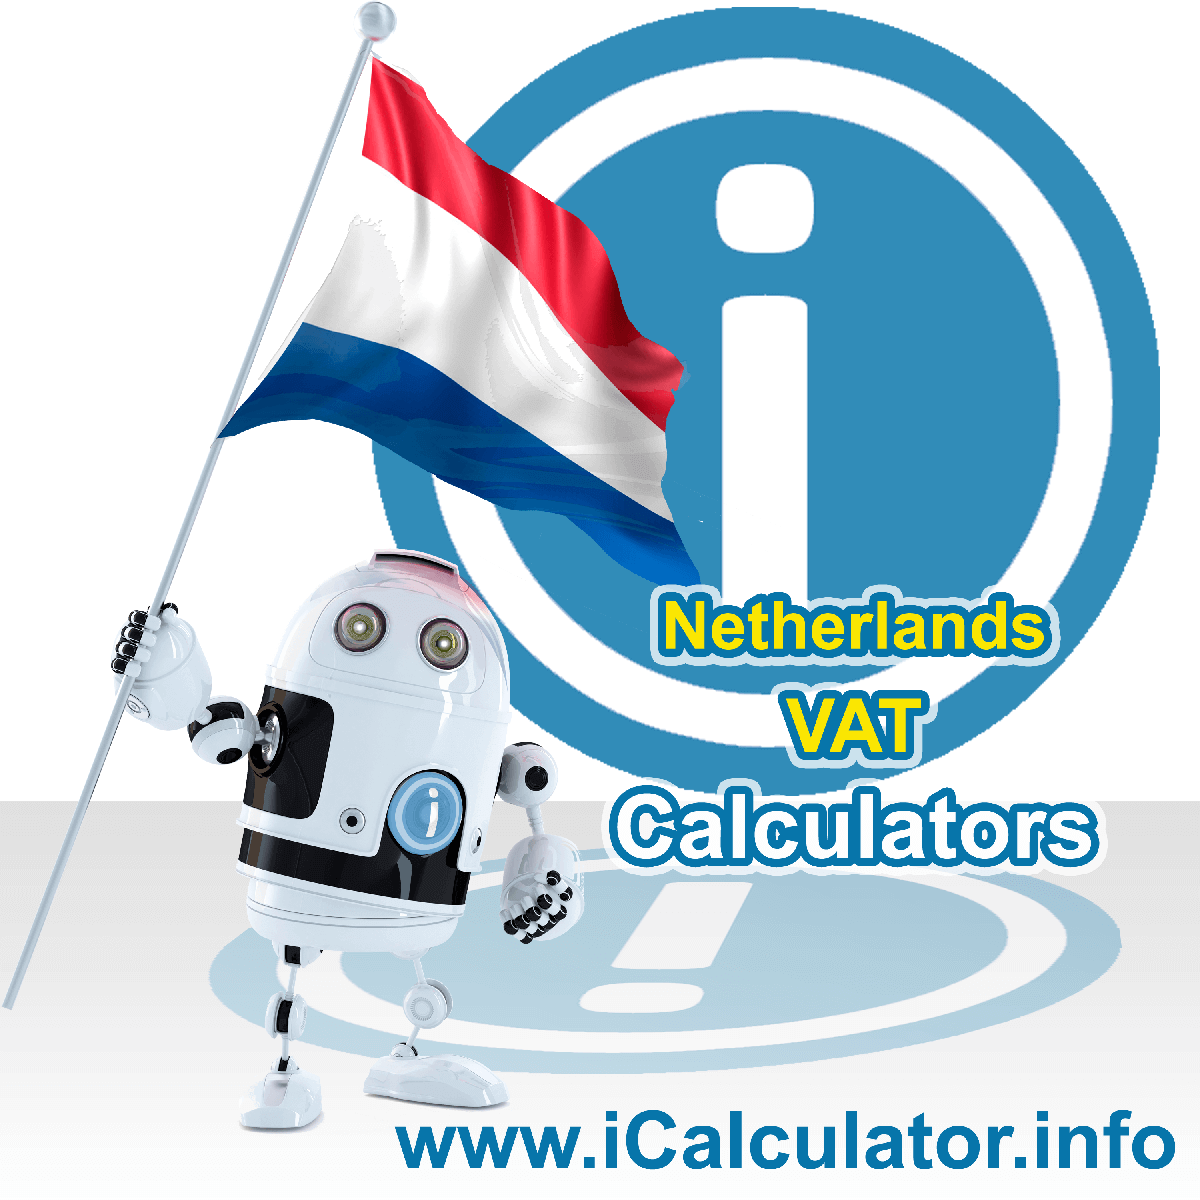 Netherlands VAT Calculator. This image shows the Netherlands flag and information relating to the VAT formula used for calculating Value Added Tax in the Netherlands using the Netherlands VAT Calculator in 2020